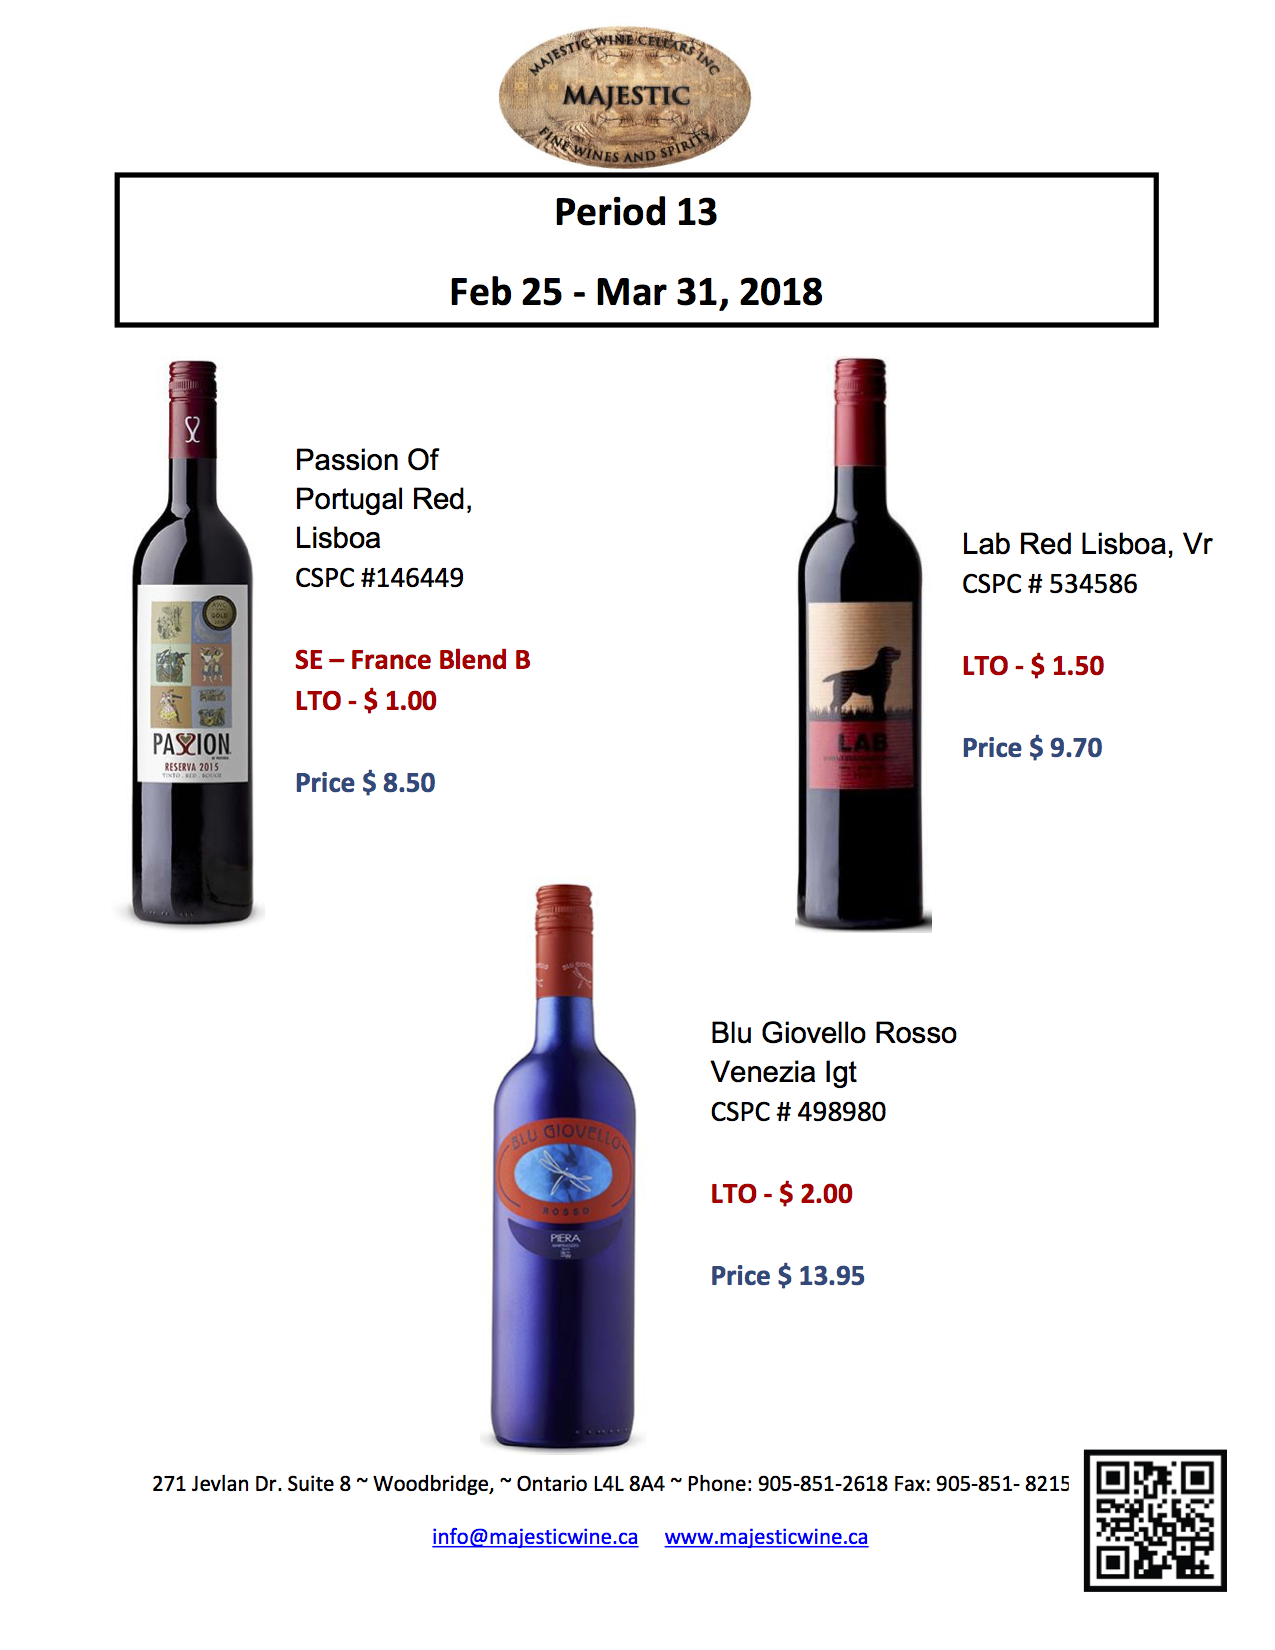 Period 13: February 25th - March 31st, 2018 Promotion